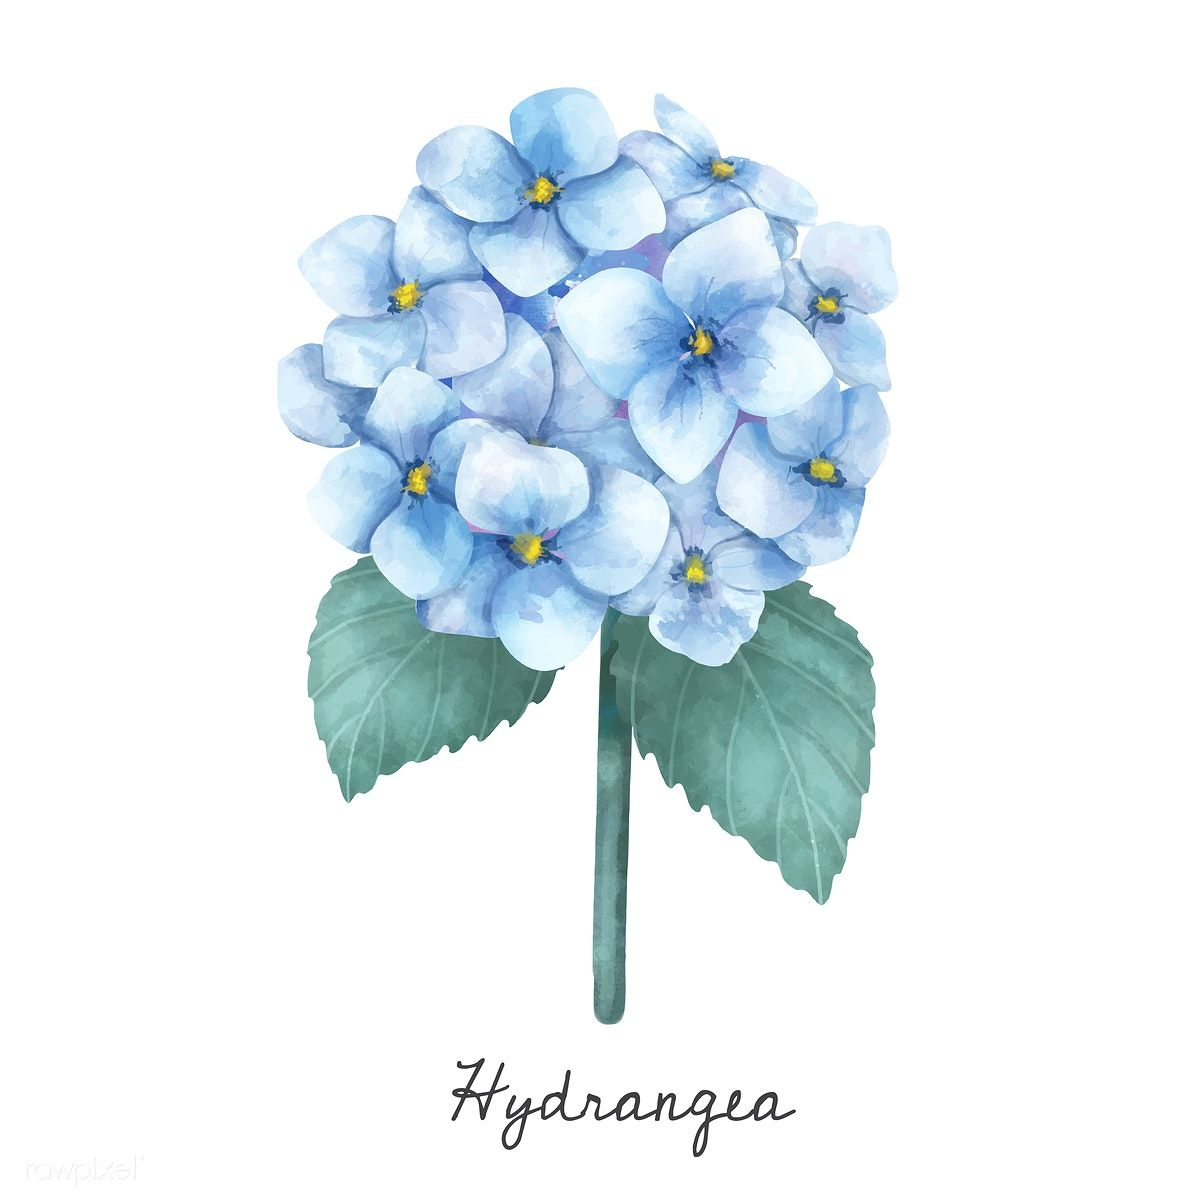 Illustration Of Hydrangea Flower Isolated On White Background Free Image By Rawpixel Com Flower Illustration Flower Background Wallpaper Plant Illustration